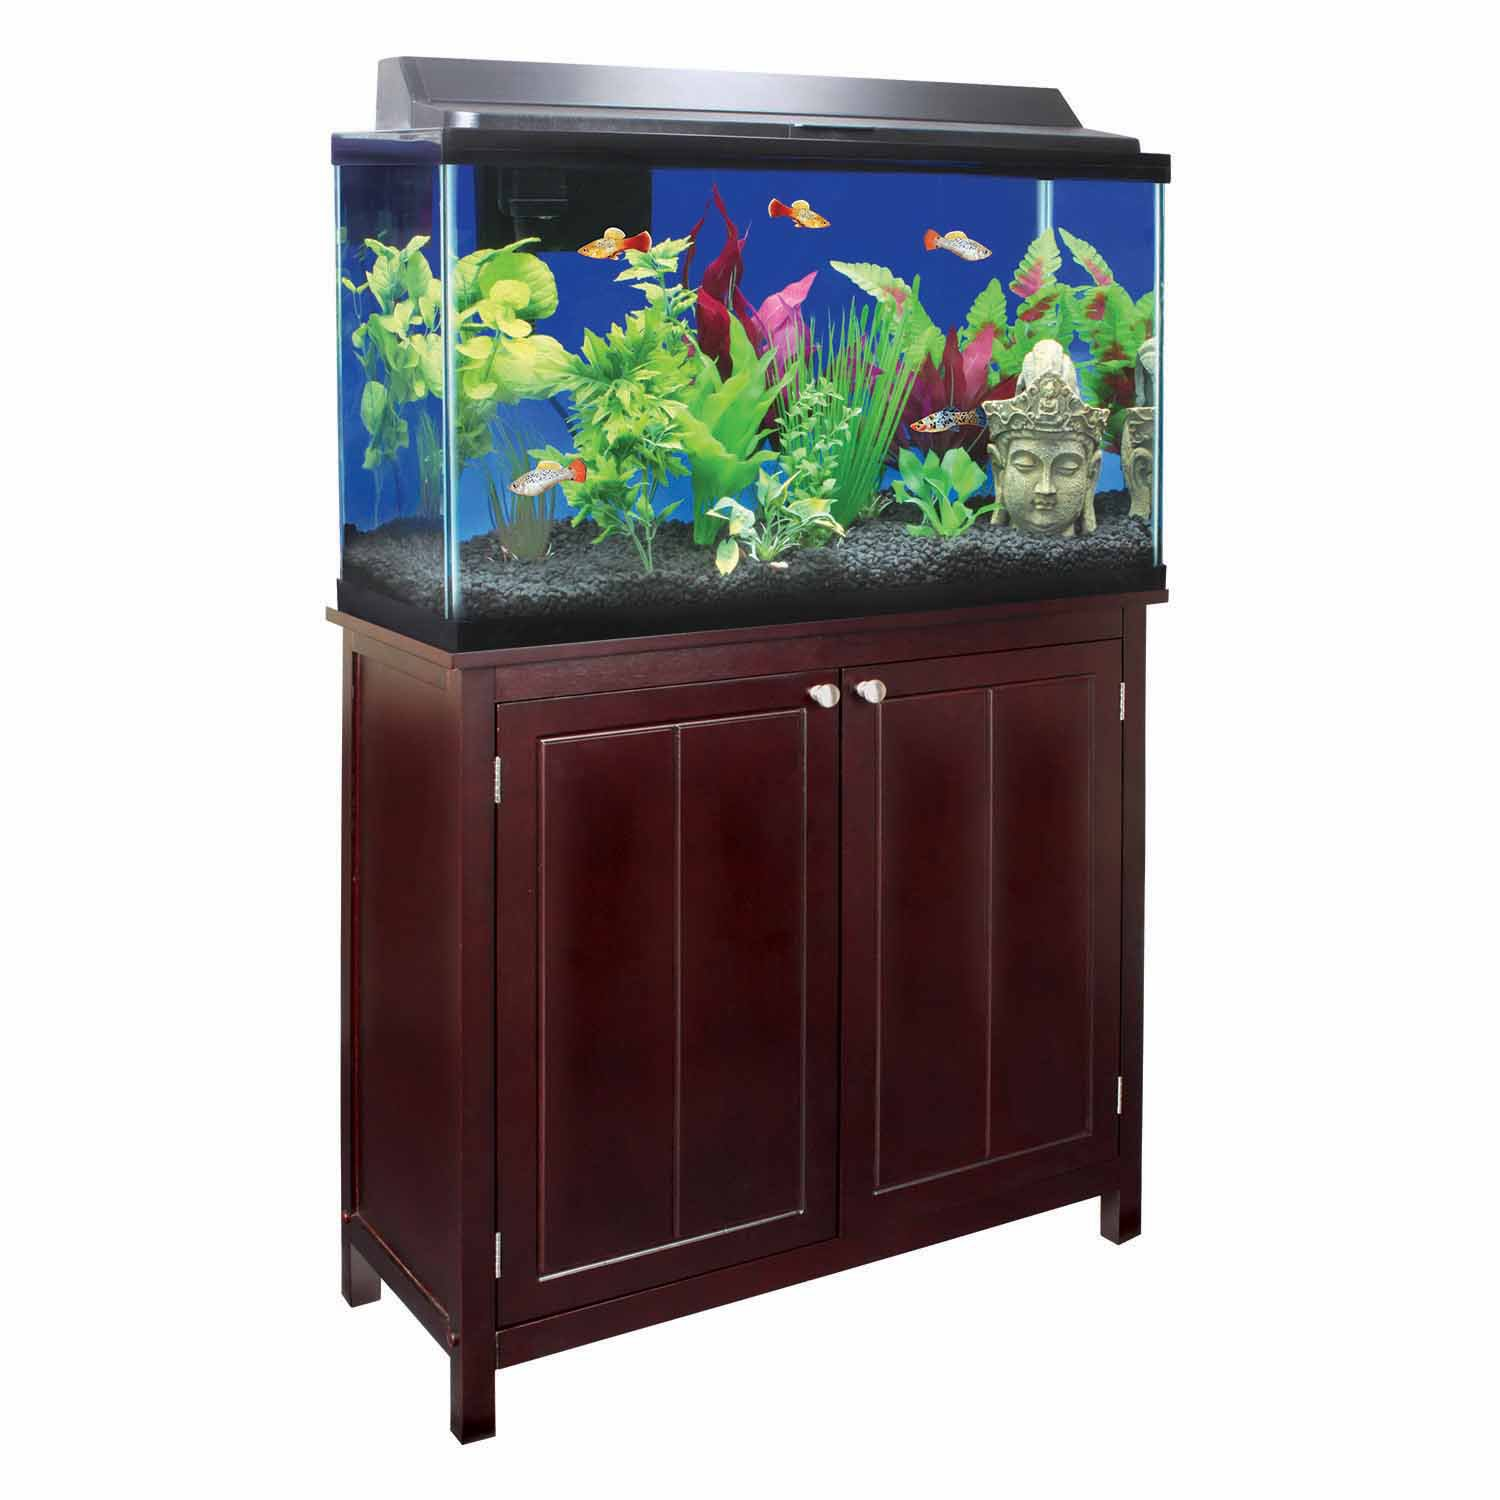 Imagitarium preferred winston tank stand 29 gallons petco for 55 gallon fish tank petco